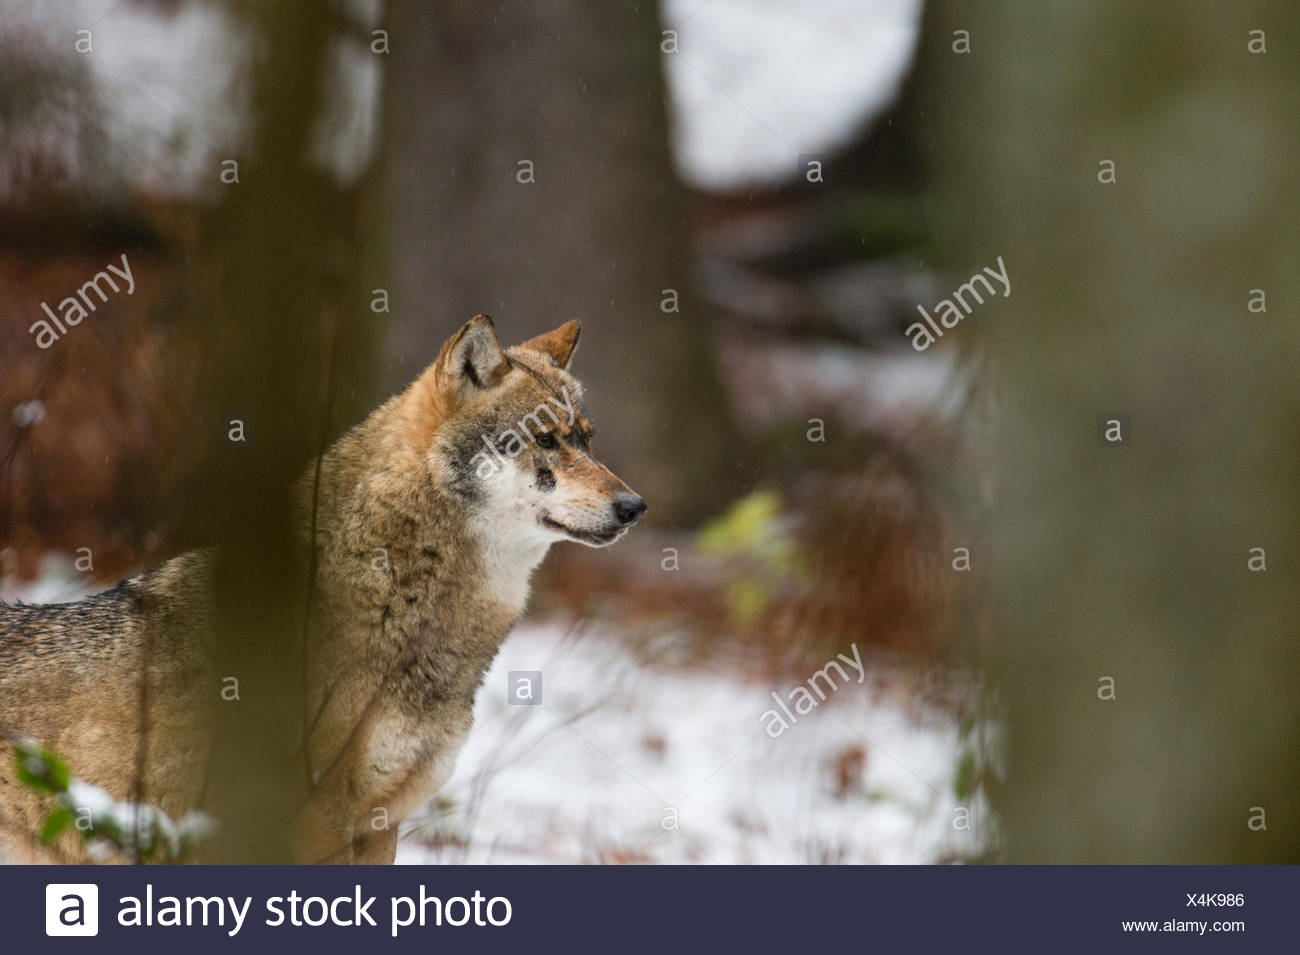 Grey wolf (Canis lupus) snowy forest, Bavarian forest national park, Bavaria, Germany Stock Photo